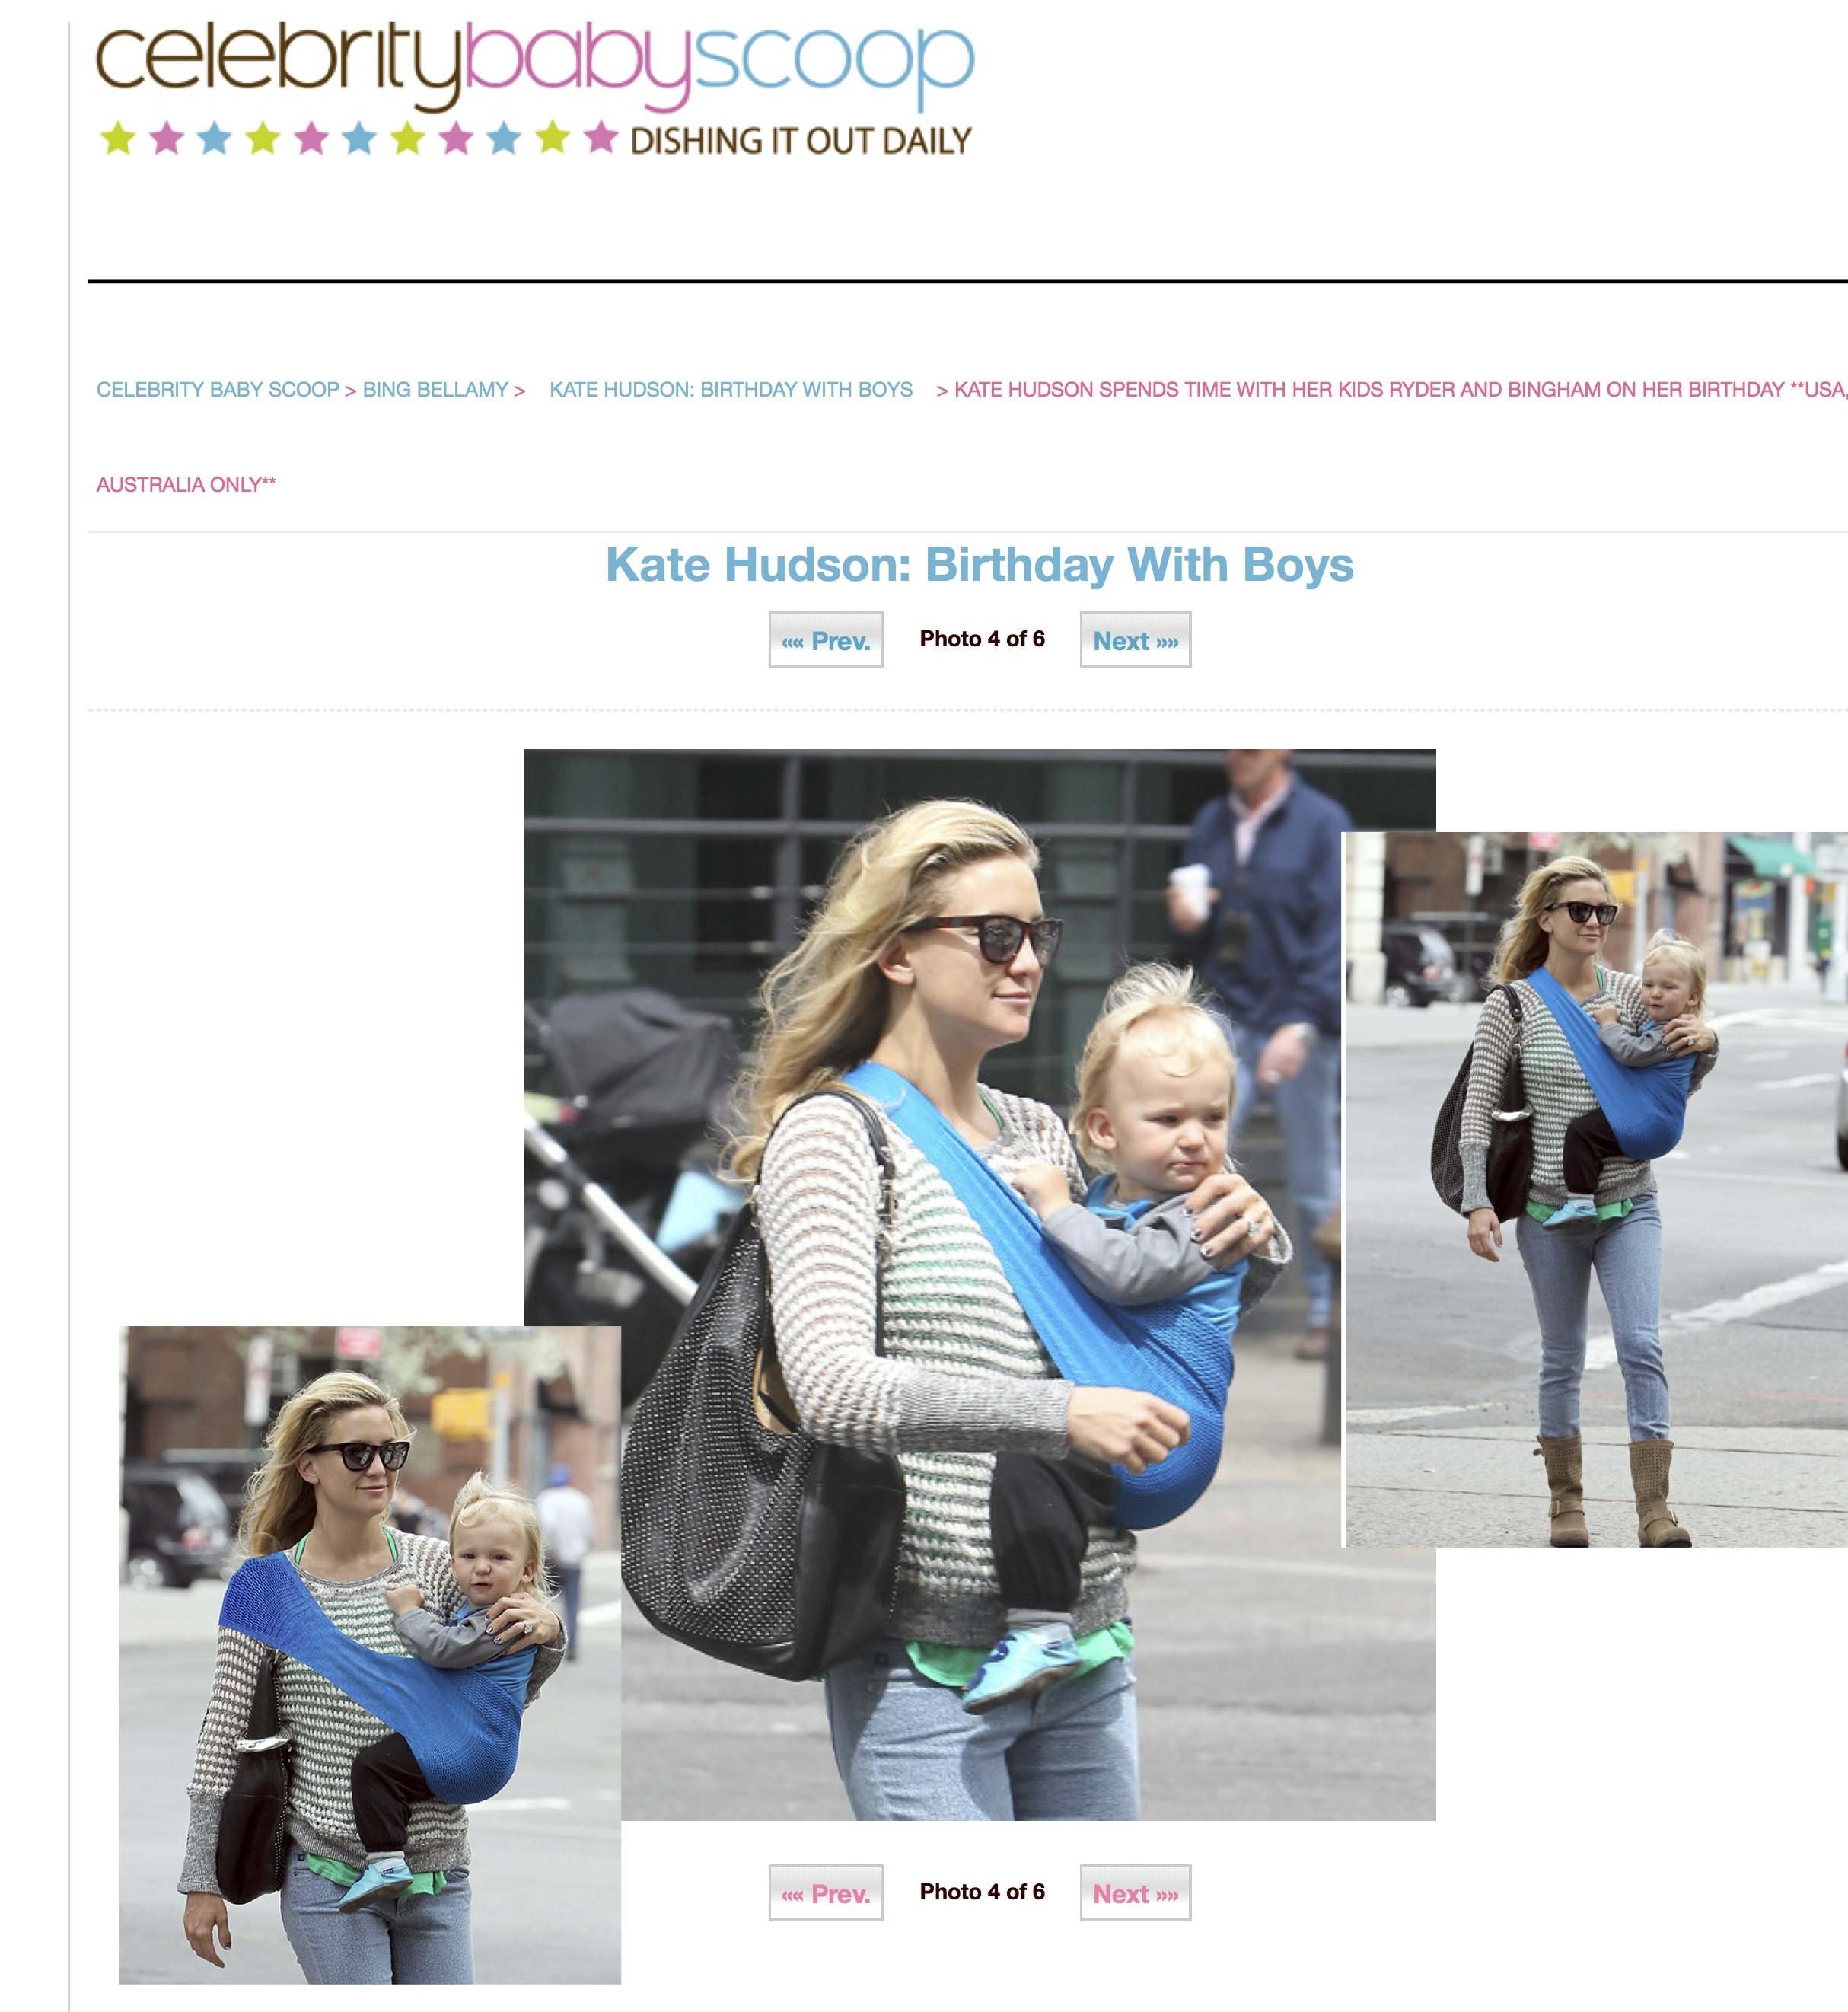 acd4428e7c1 Kate Hudson Spotted Wearing The SUPPORi Baby Carrier